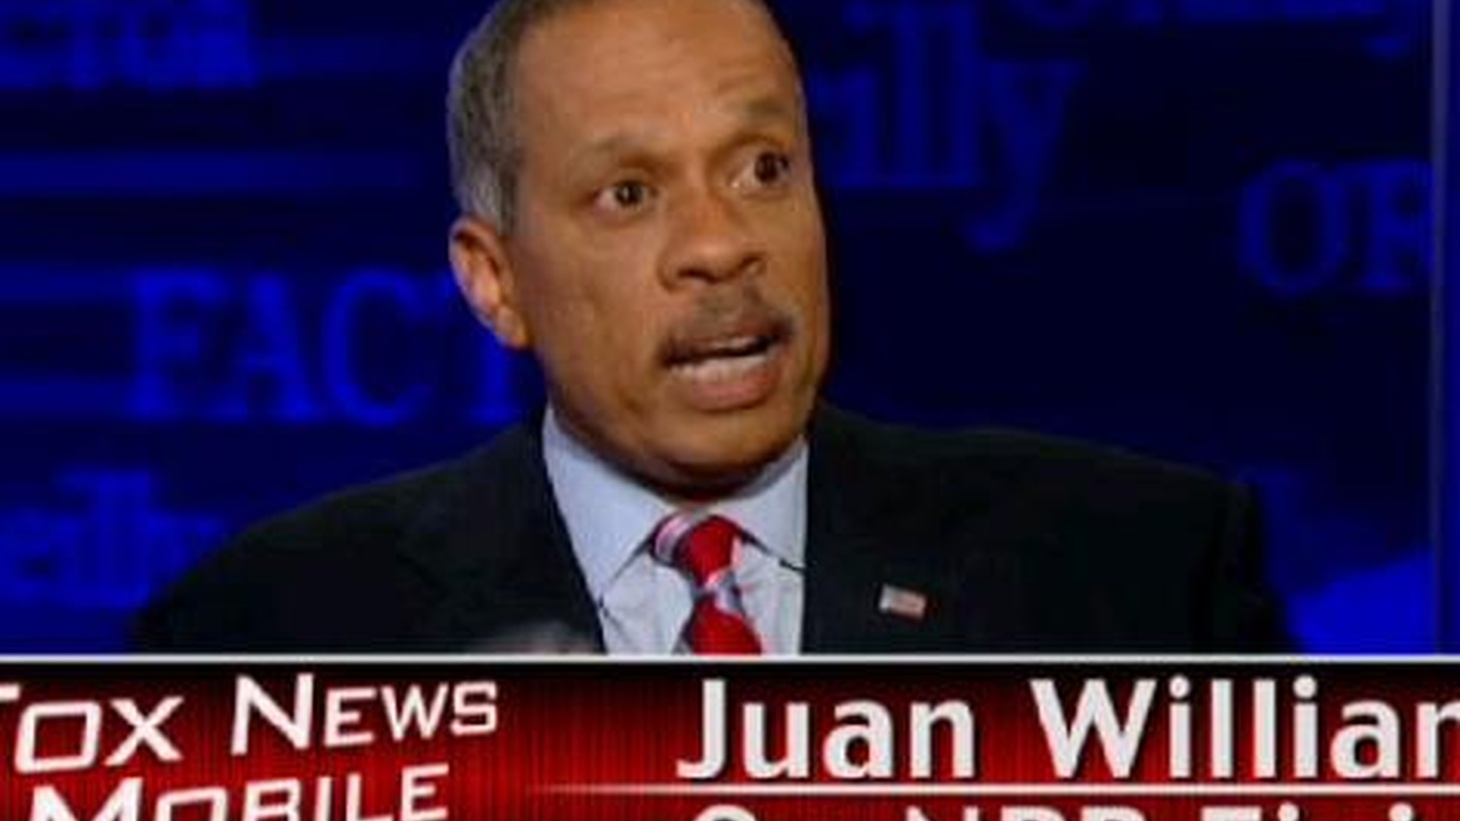 NPR's firing of  Juan Williams has create a firestorm of negative publicity and political calls to defund public broadcasting. How much is the Fannie Mae-Freddie Mac mortgage mess really costing American taxpayers? In the last ten days before mid-terms, who will turn out to vote? Also, is the UK's austerity program to help balance their budget a lesson for the US?